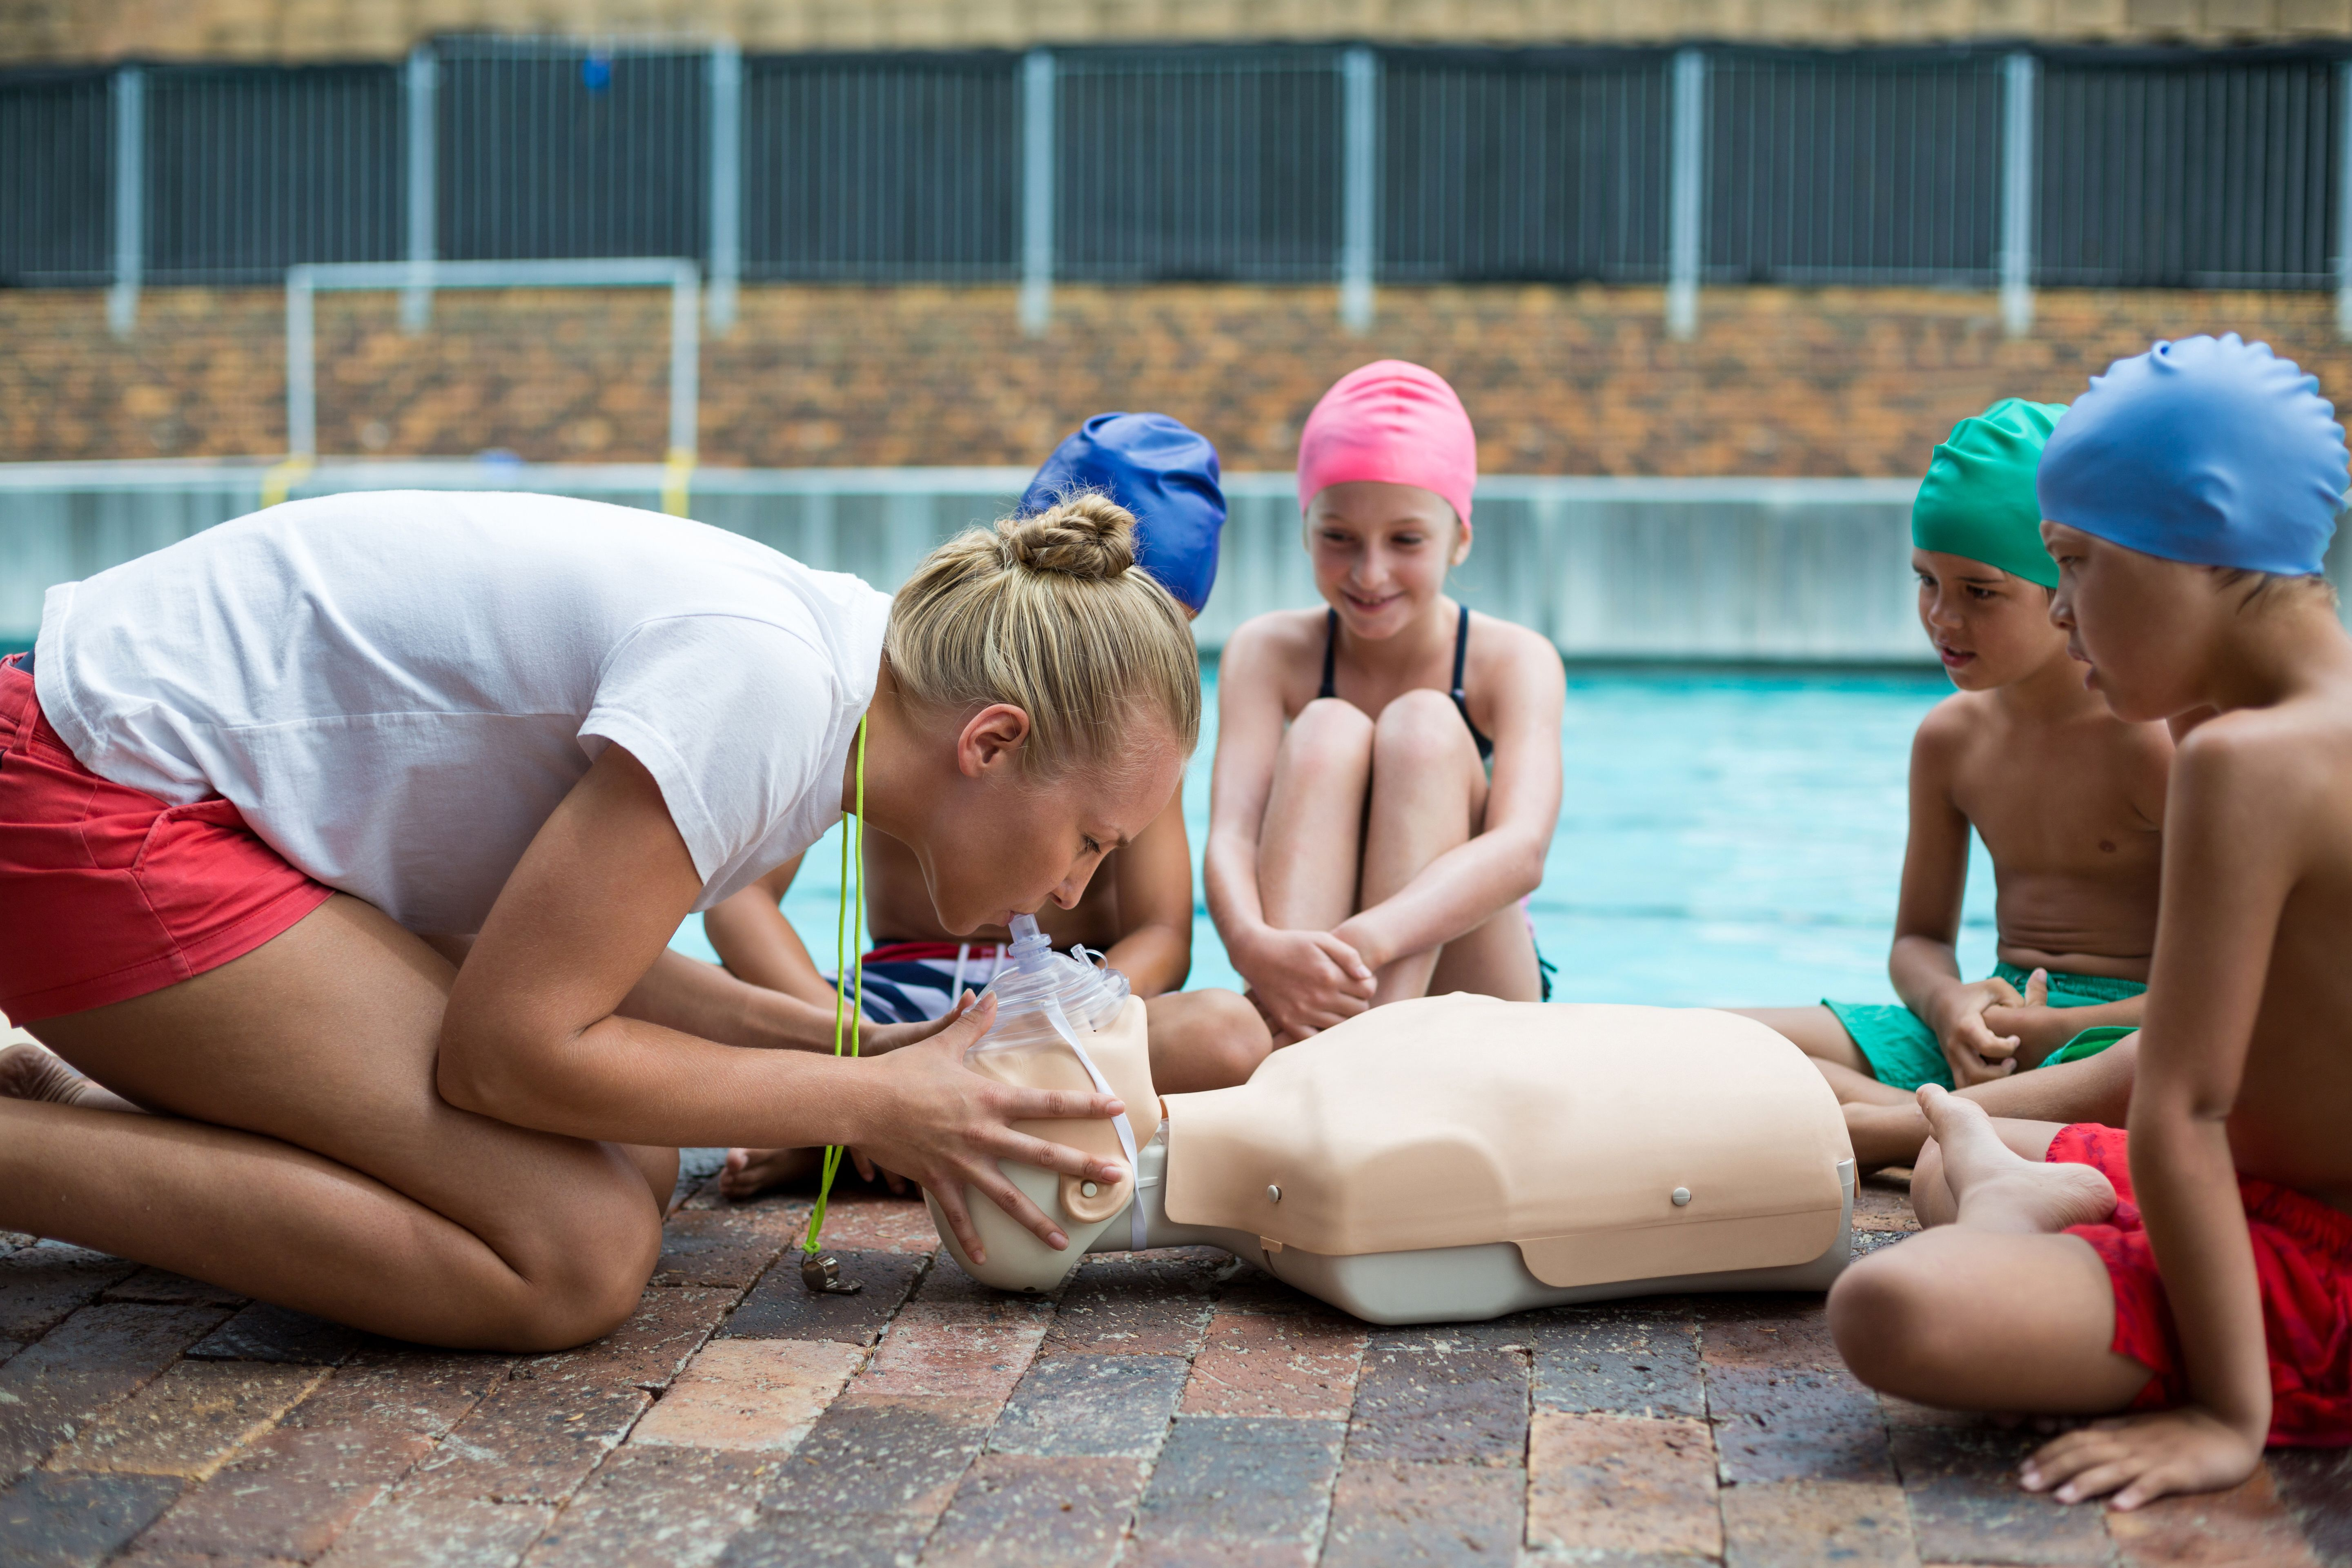 How to Become a Lifeguard - Training, Certification & Jobs